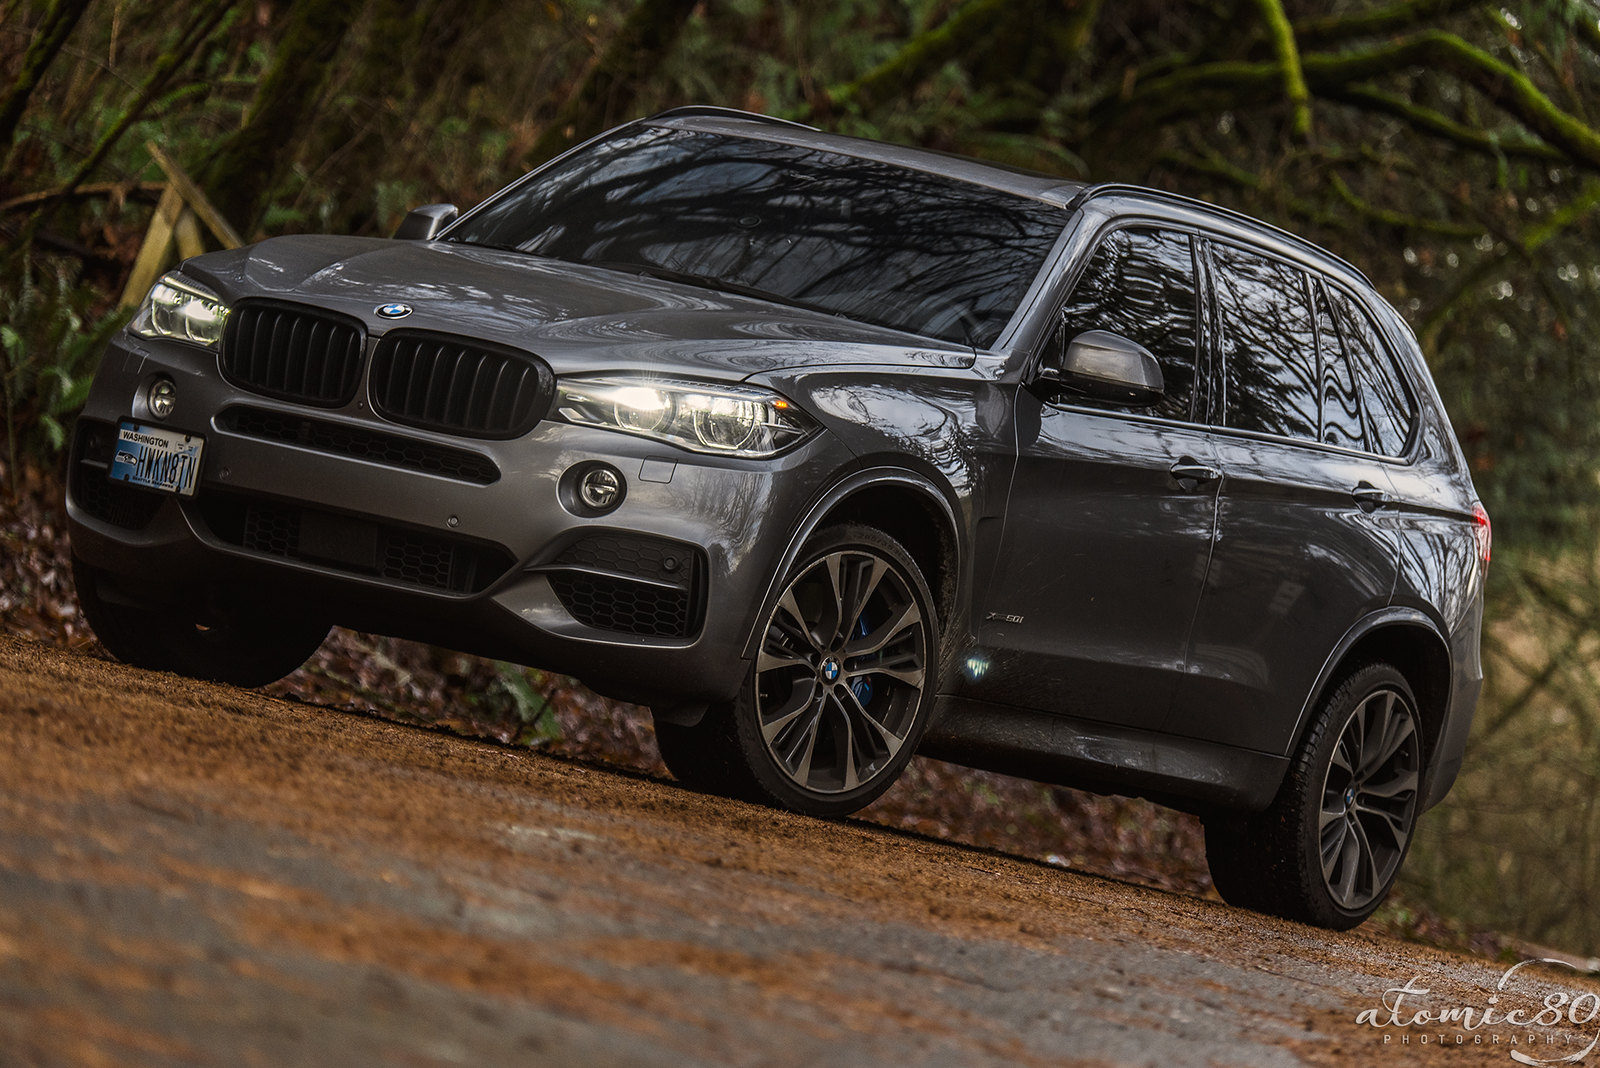 Bmw x5 by atomic80 on flickr